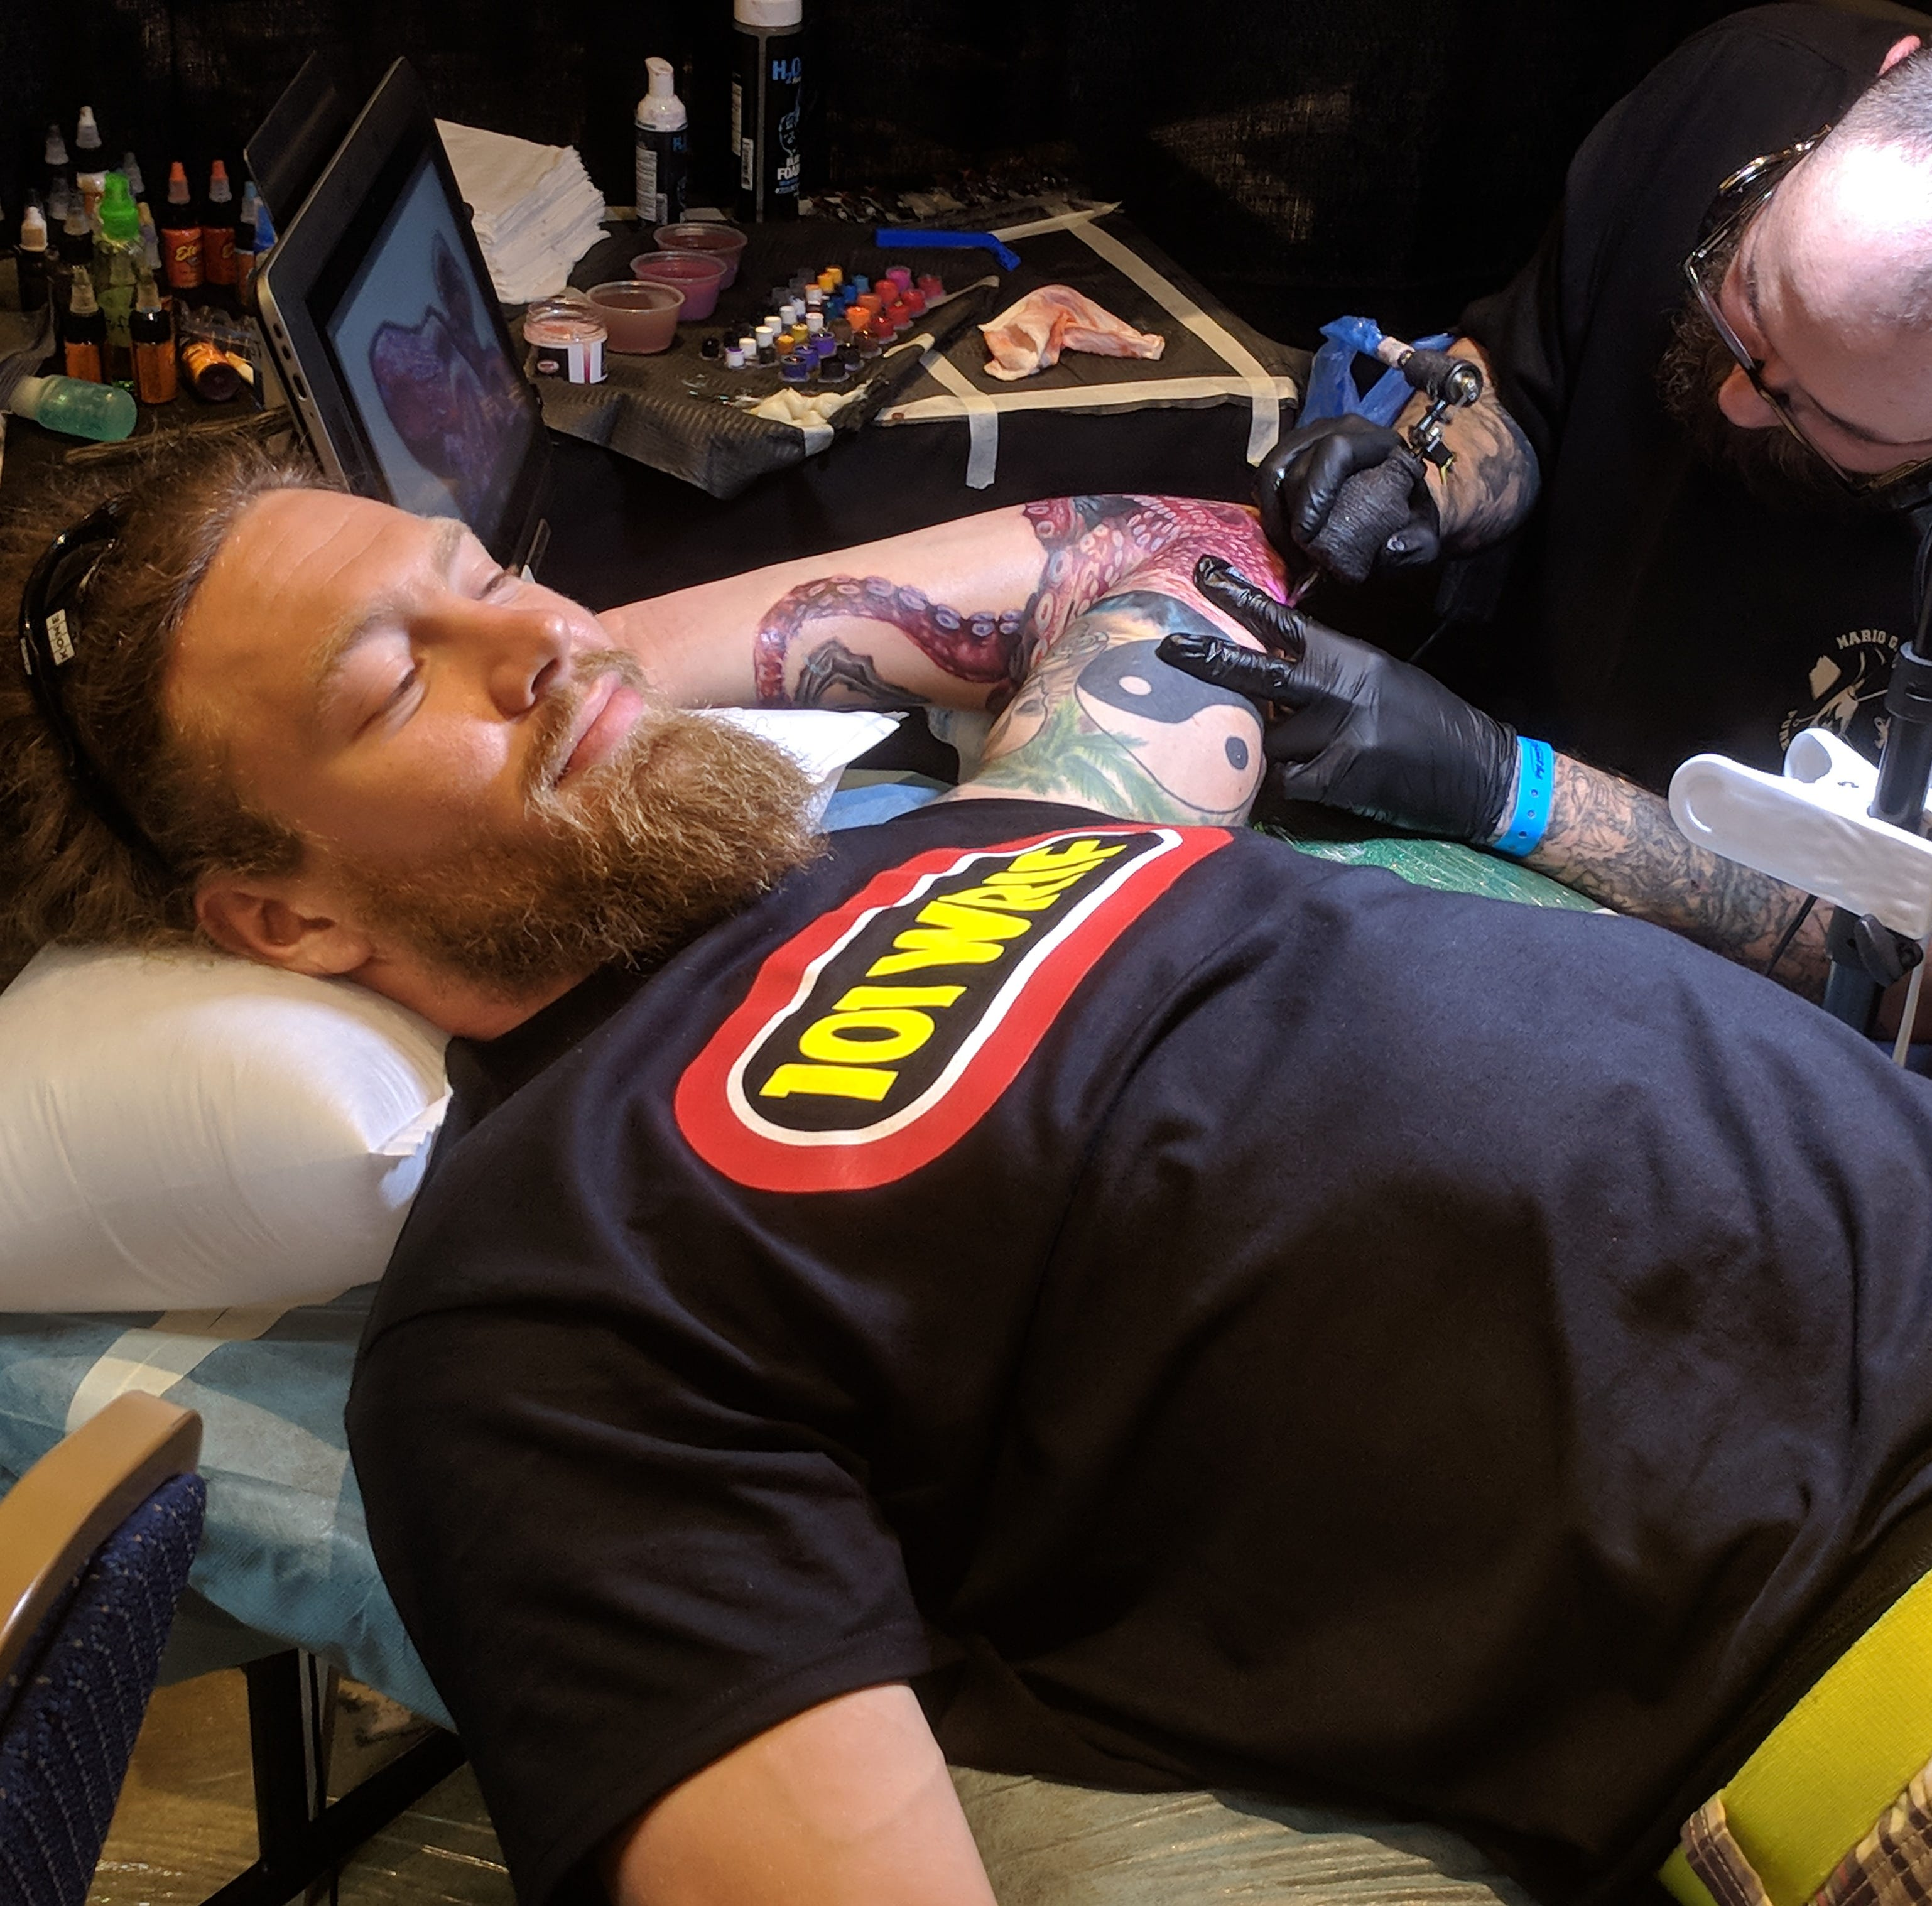 Ryan Paxson, 27, of Brighton, receives a tattoo from artist Sam H., of Arizona, at the second annual Detroit Summer Tattoo Expo at the Renaissance Center in Detroit.